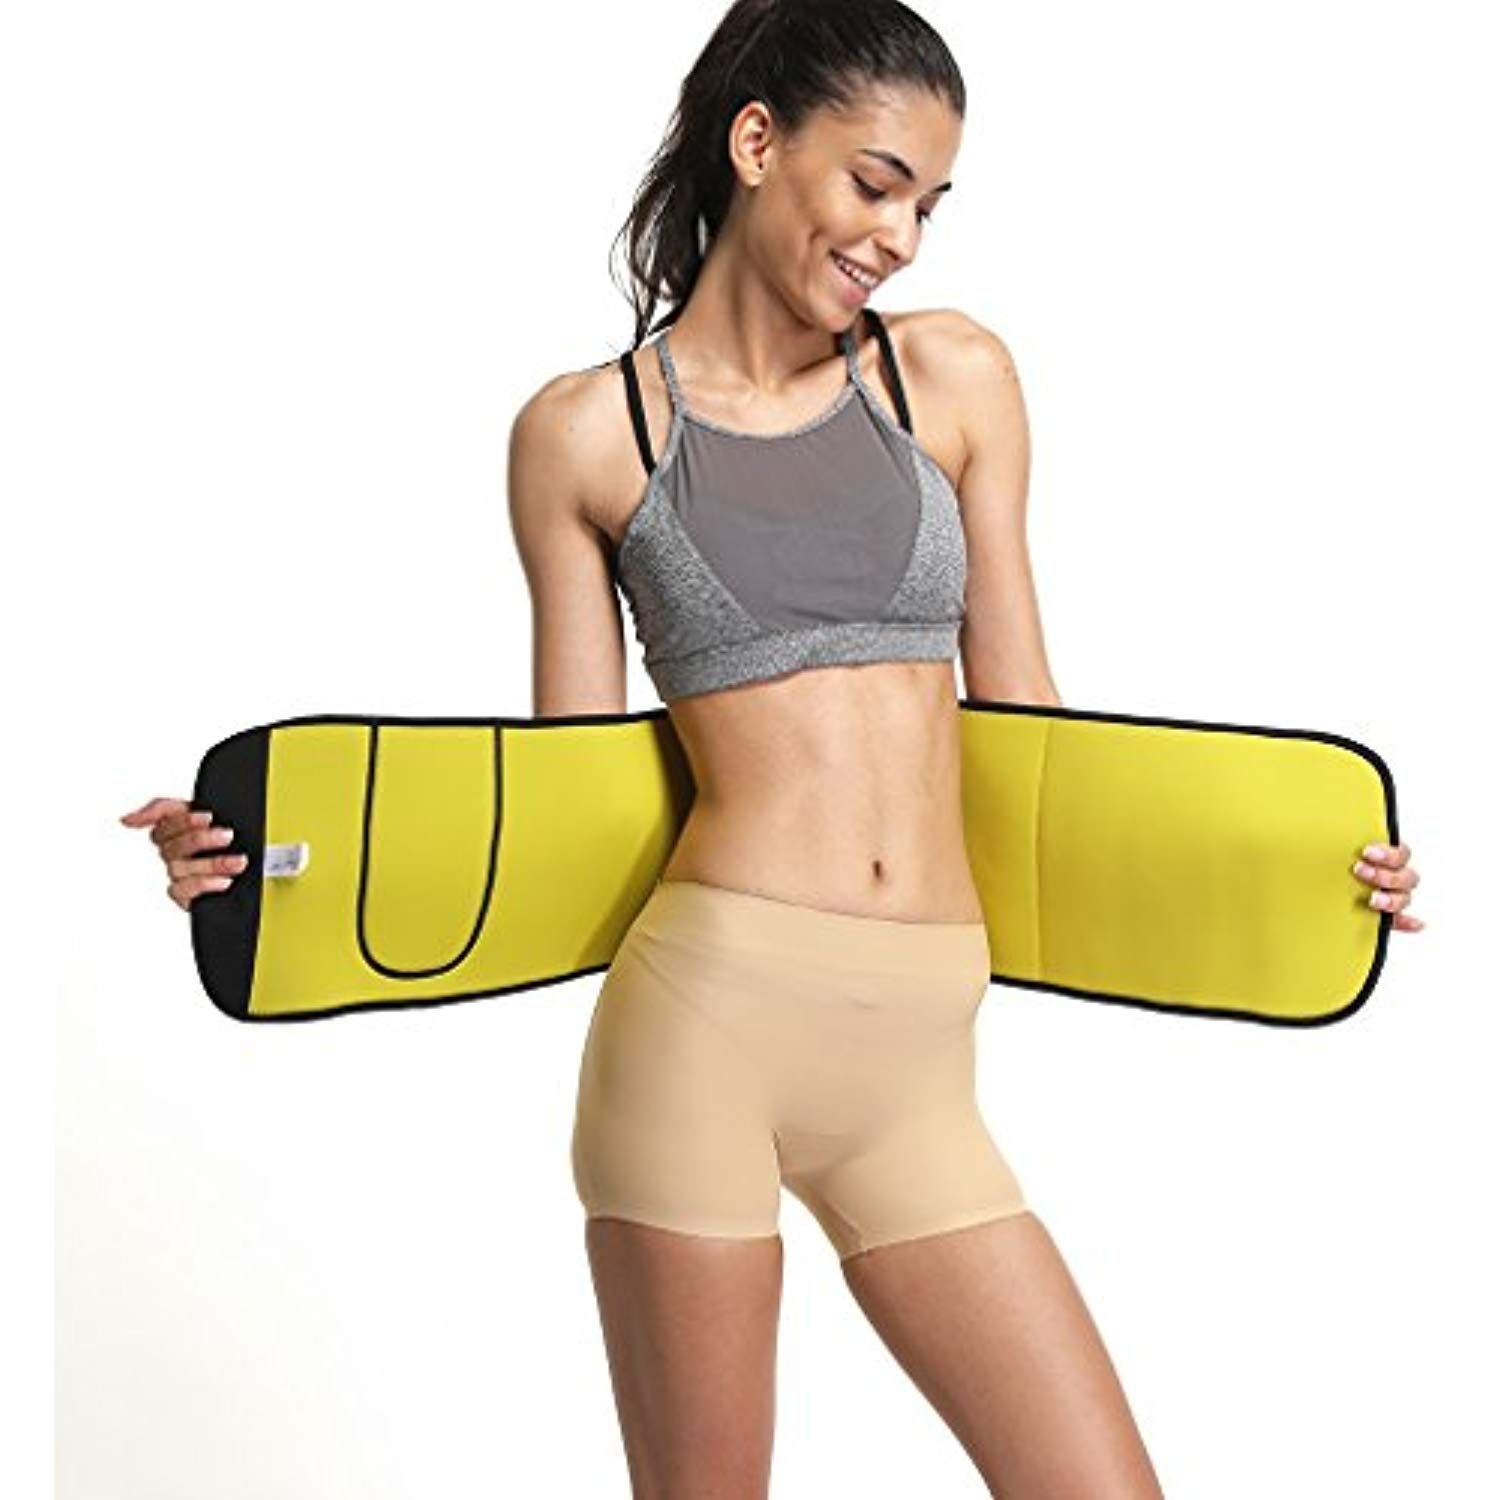 fe737603ae Waist Trimmer Belt Stomach Shaper for Women Men Adjustable Belly Band Wraps  for Weight Loss Sweat